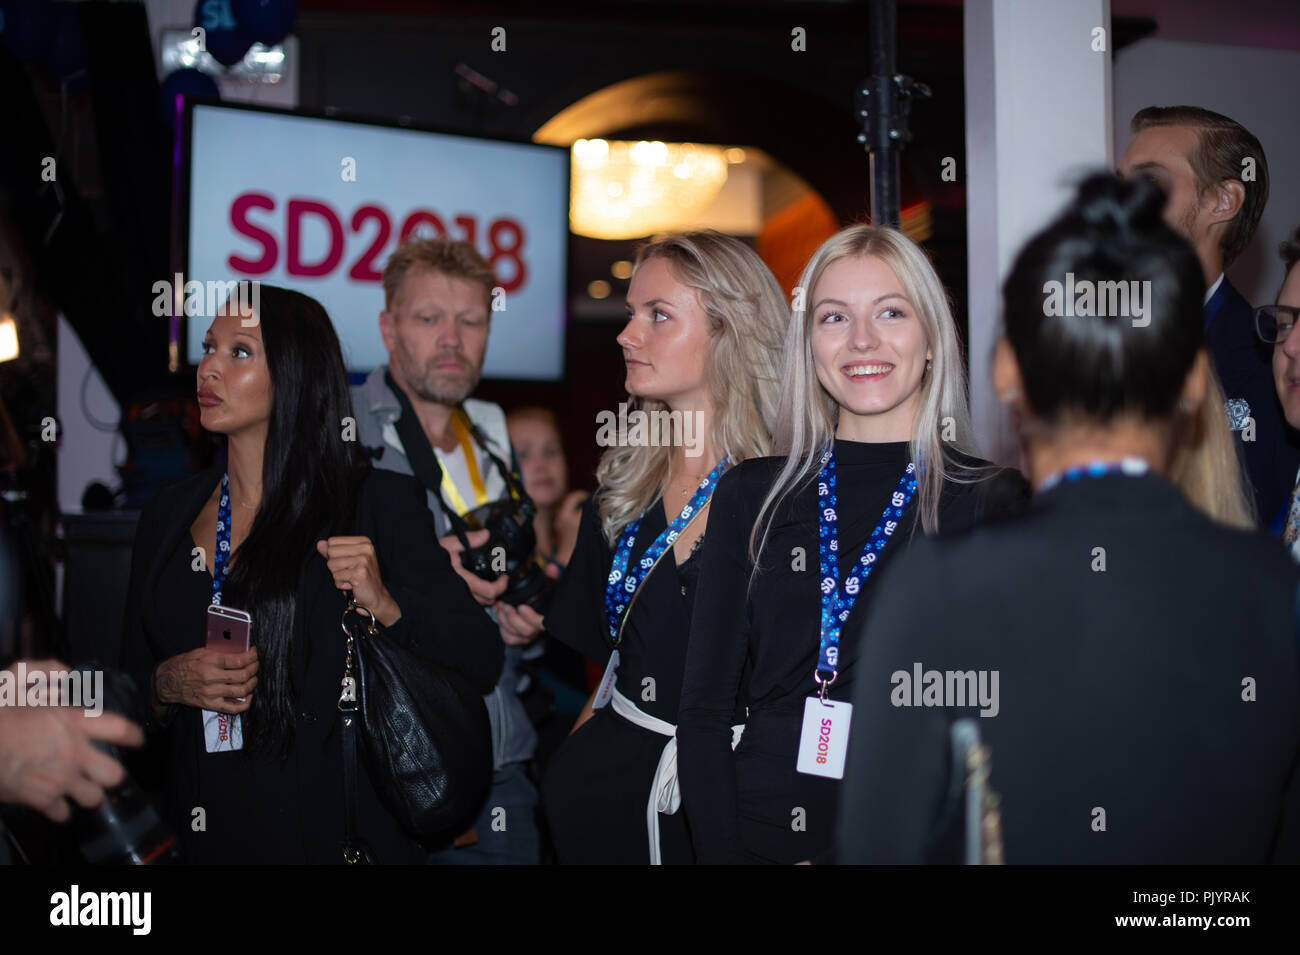 Stockholm, Sweden, September 9, 2018. Swedish General Election 2018.  Election Night Watch Party for Sweden Democrats (SD) in central Stockholm, Sweden. Credit: Barbro Bergfeldt/Alamy Live News Stock Photo